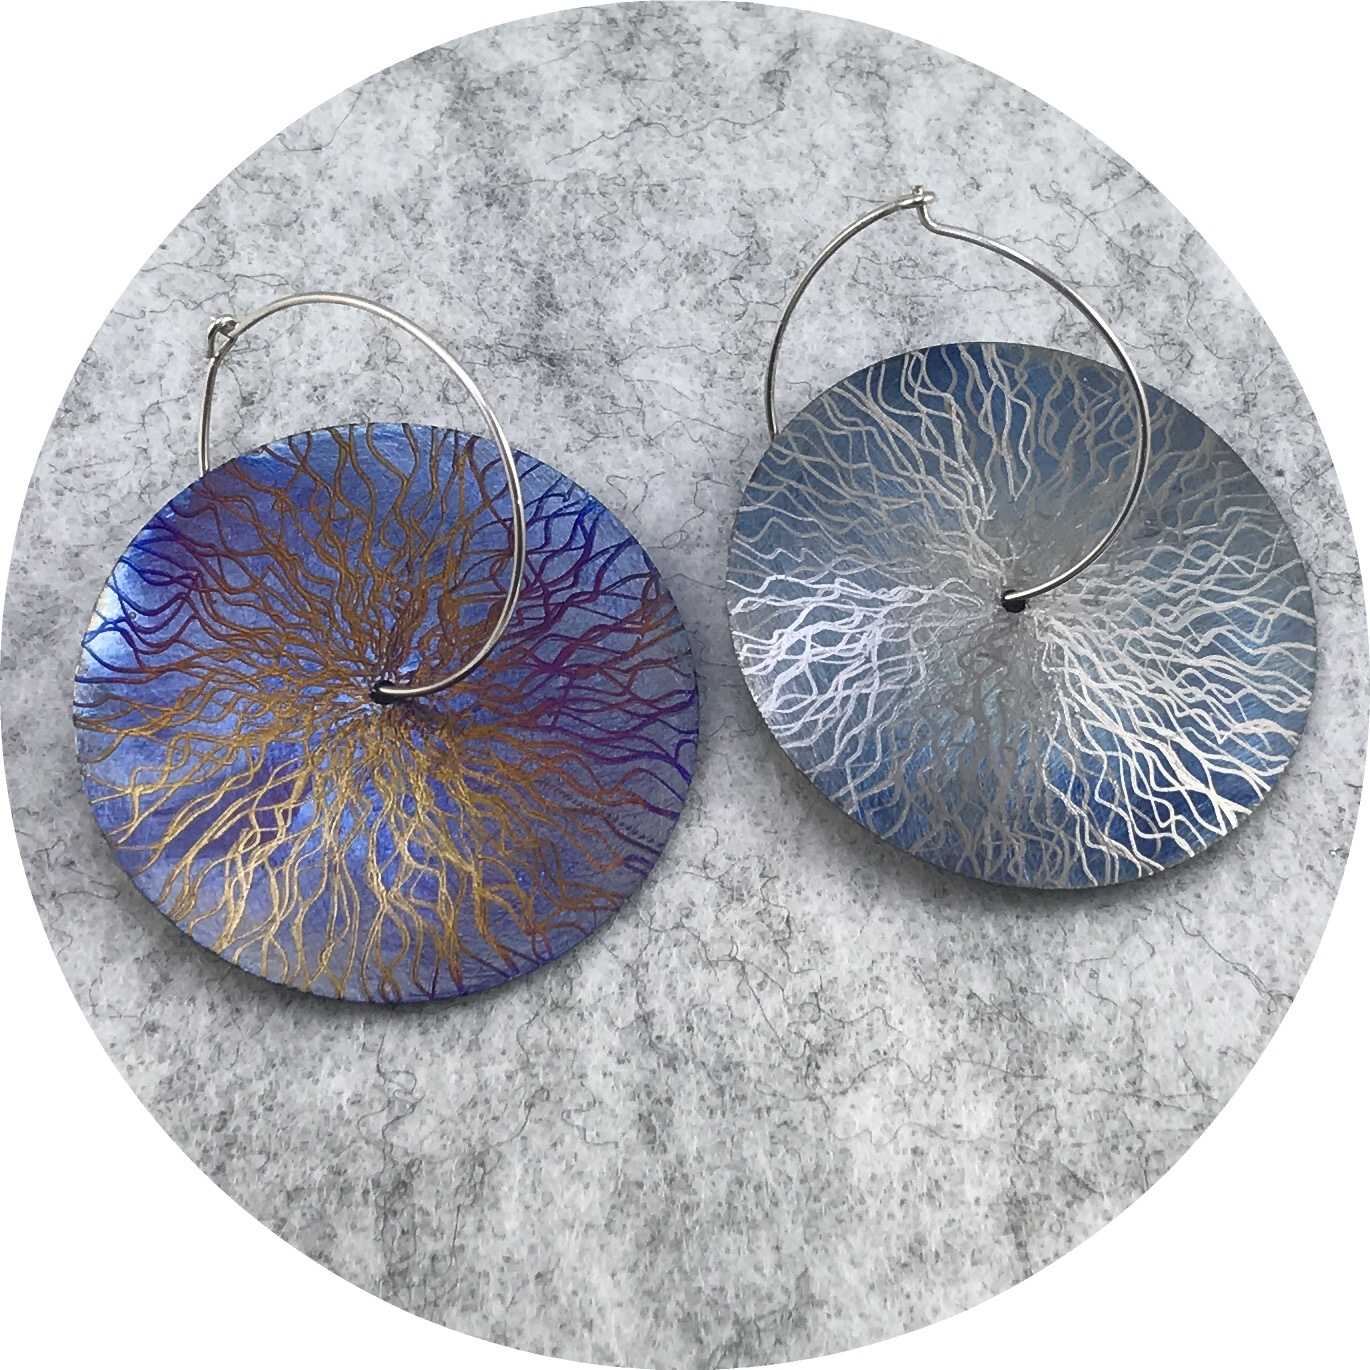 Tanja Von Behrens - Large Circle Lighting Storm Earrings in Sterling Silver and Heat Coloured Titanium.